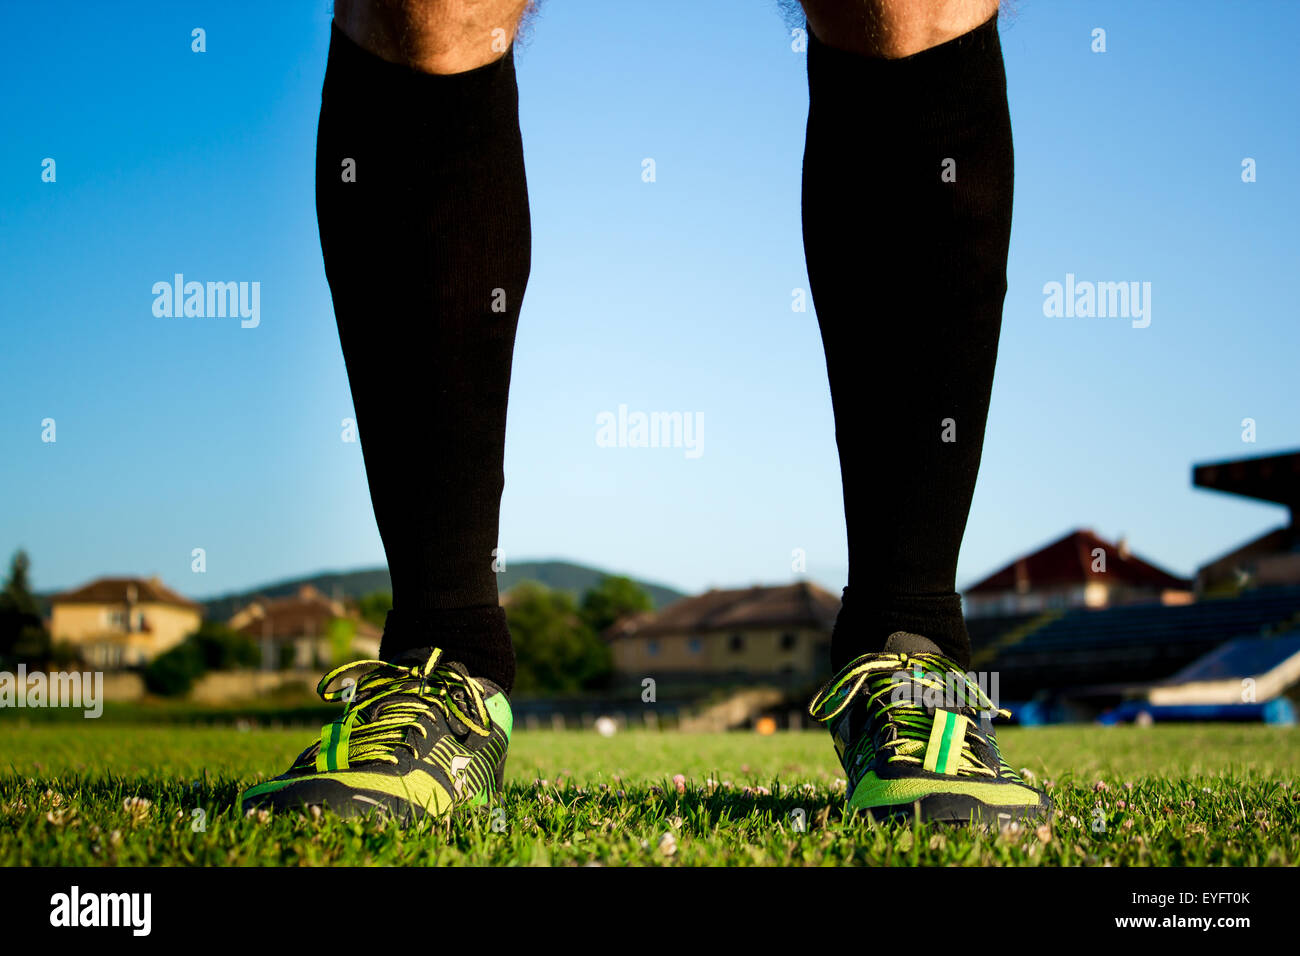 Soccer player getting ready for the game - Stock Image